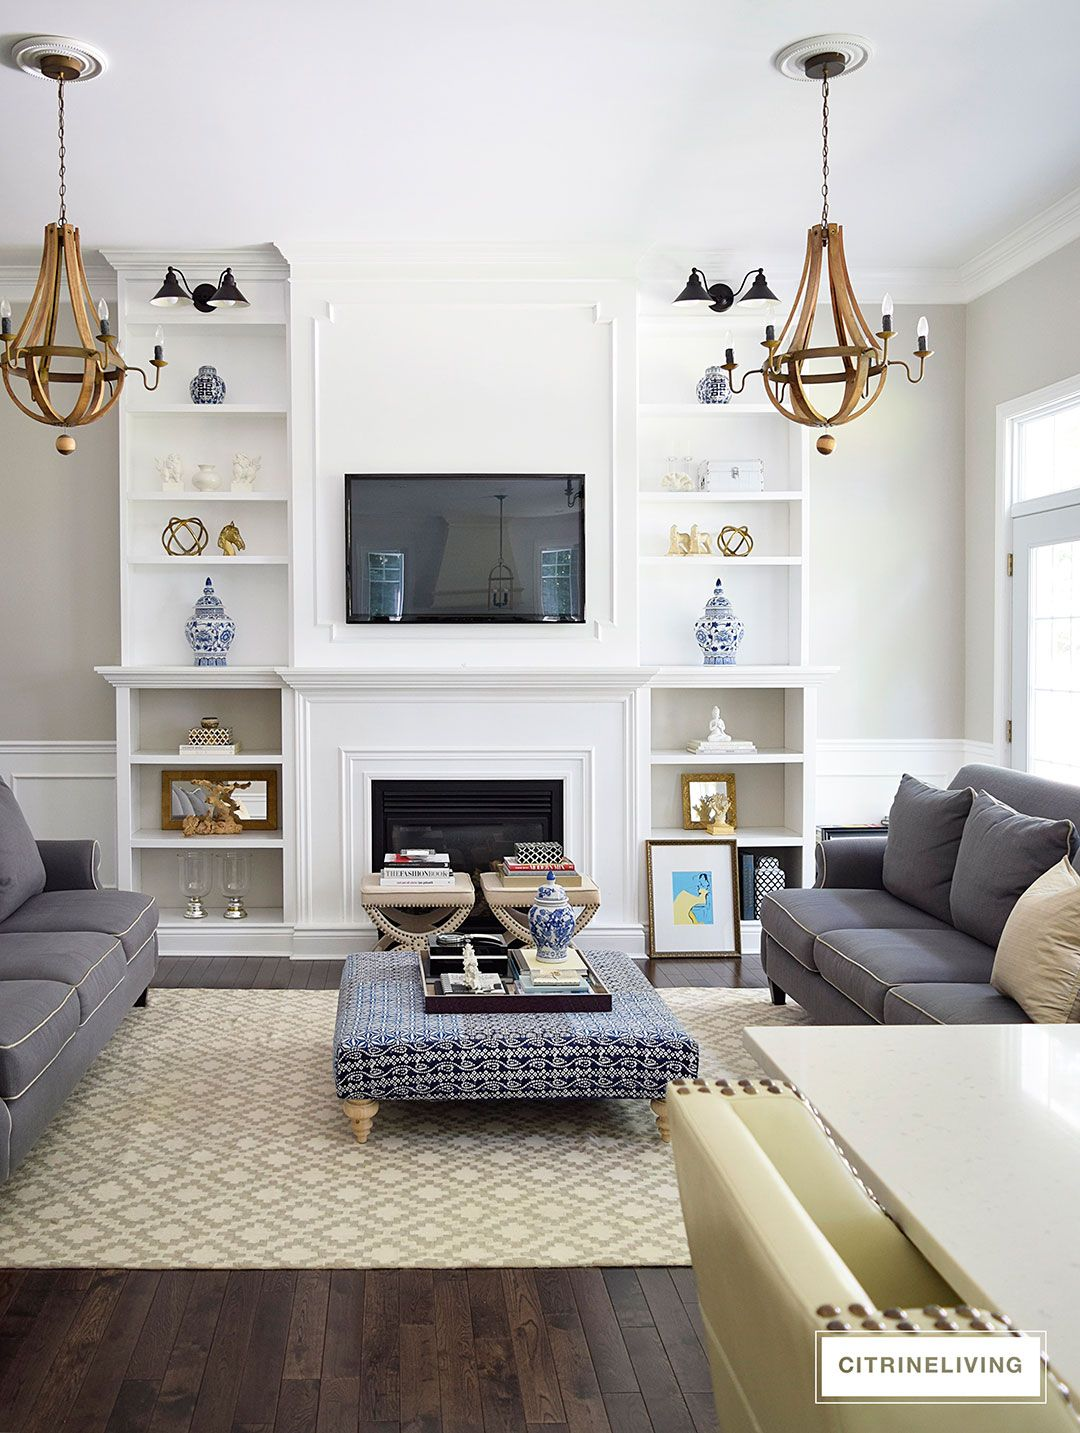 LIVING ROOM BOOKSHELVES | Living room bookshelves, Living rooms and ...